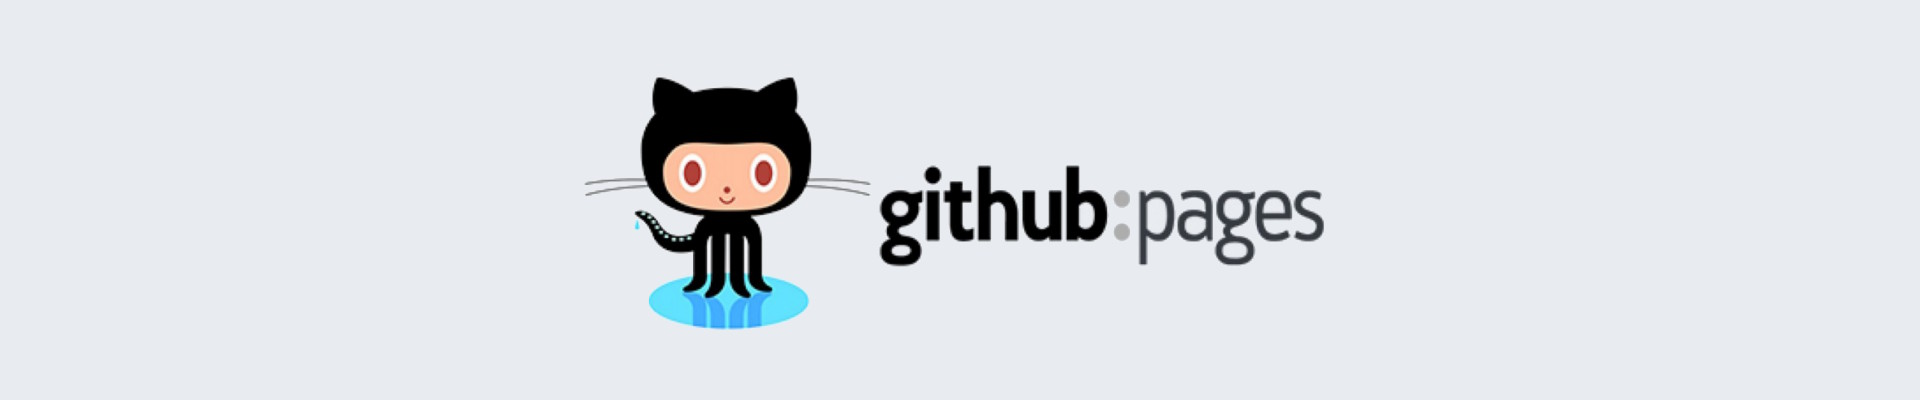 Deploying an Angular CLI project on Github Pages and Stackblitz